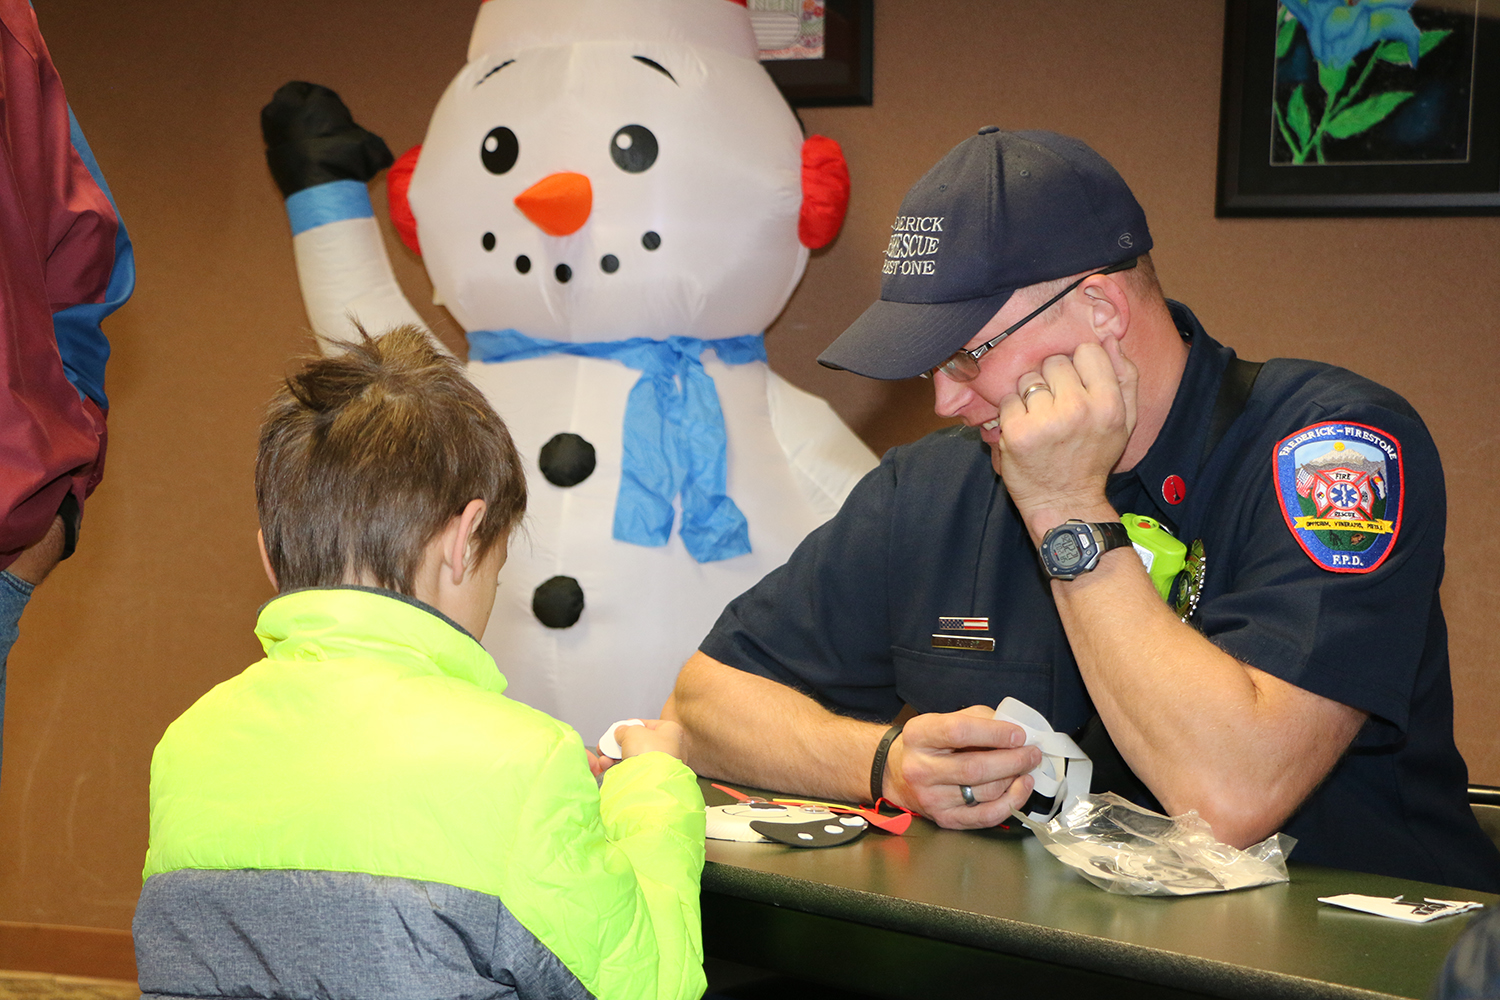 2016 Holiday Festival crafts with Firefighters